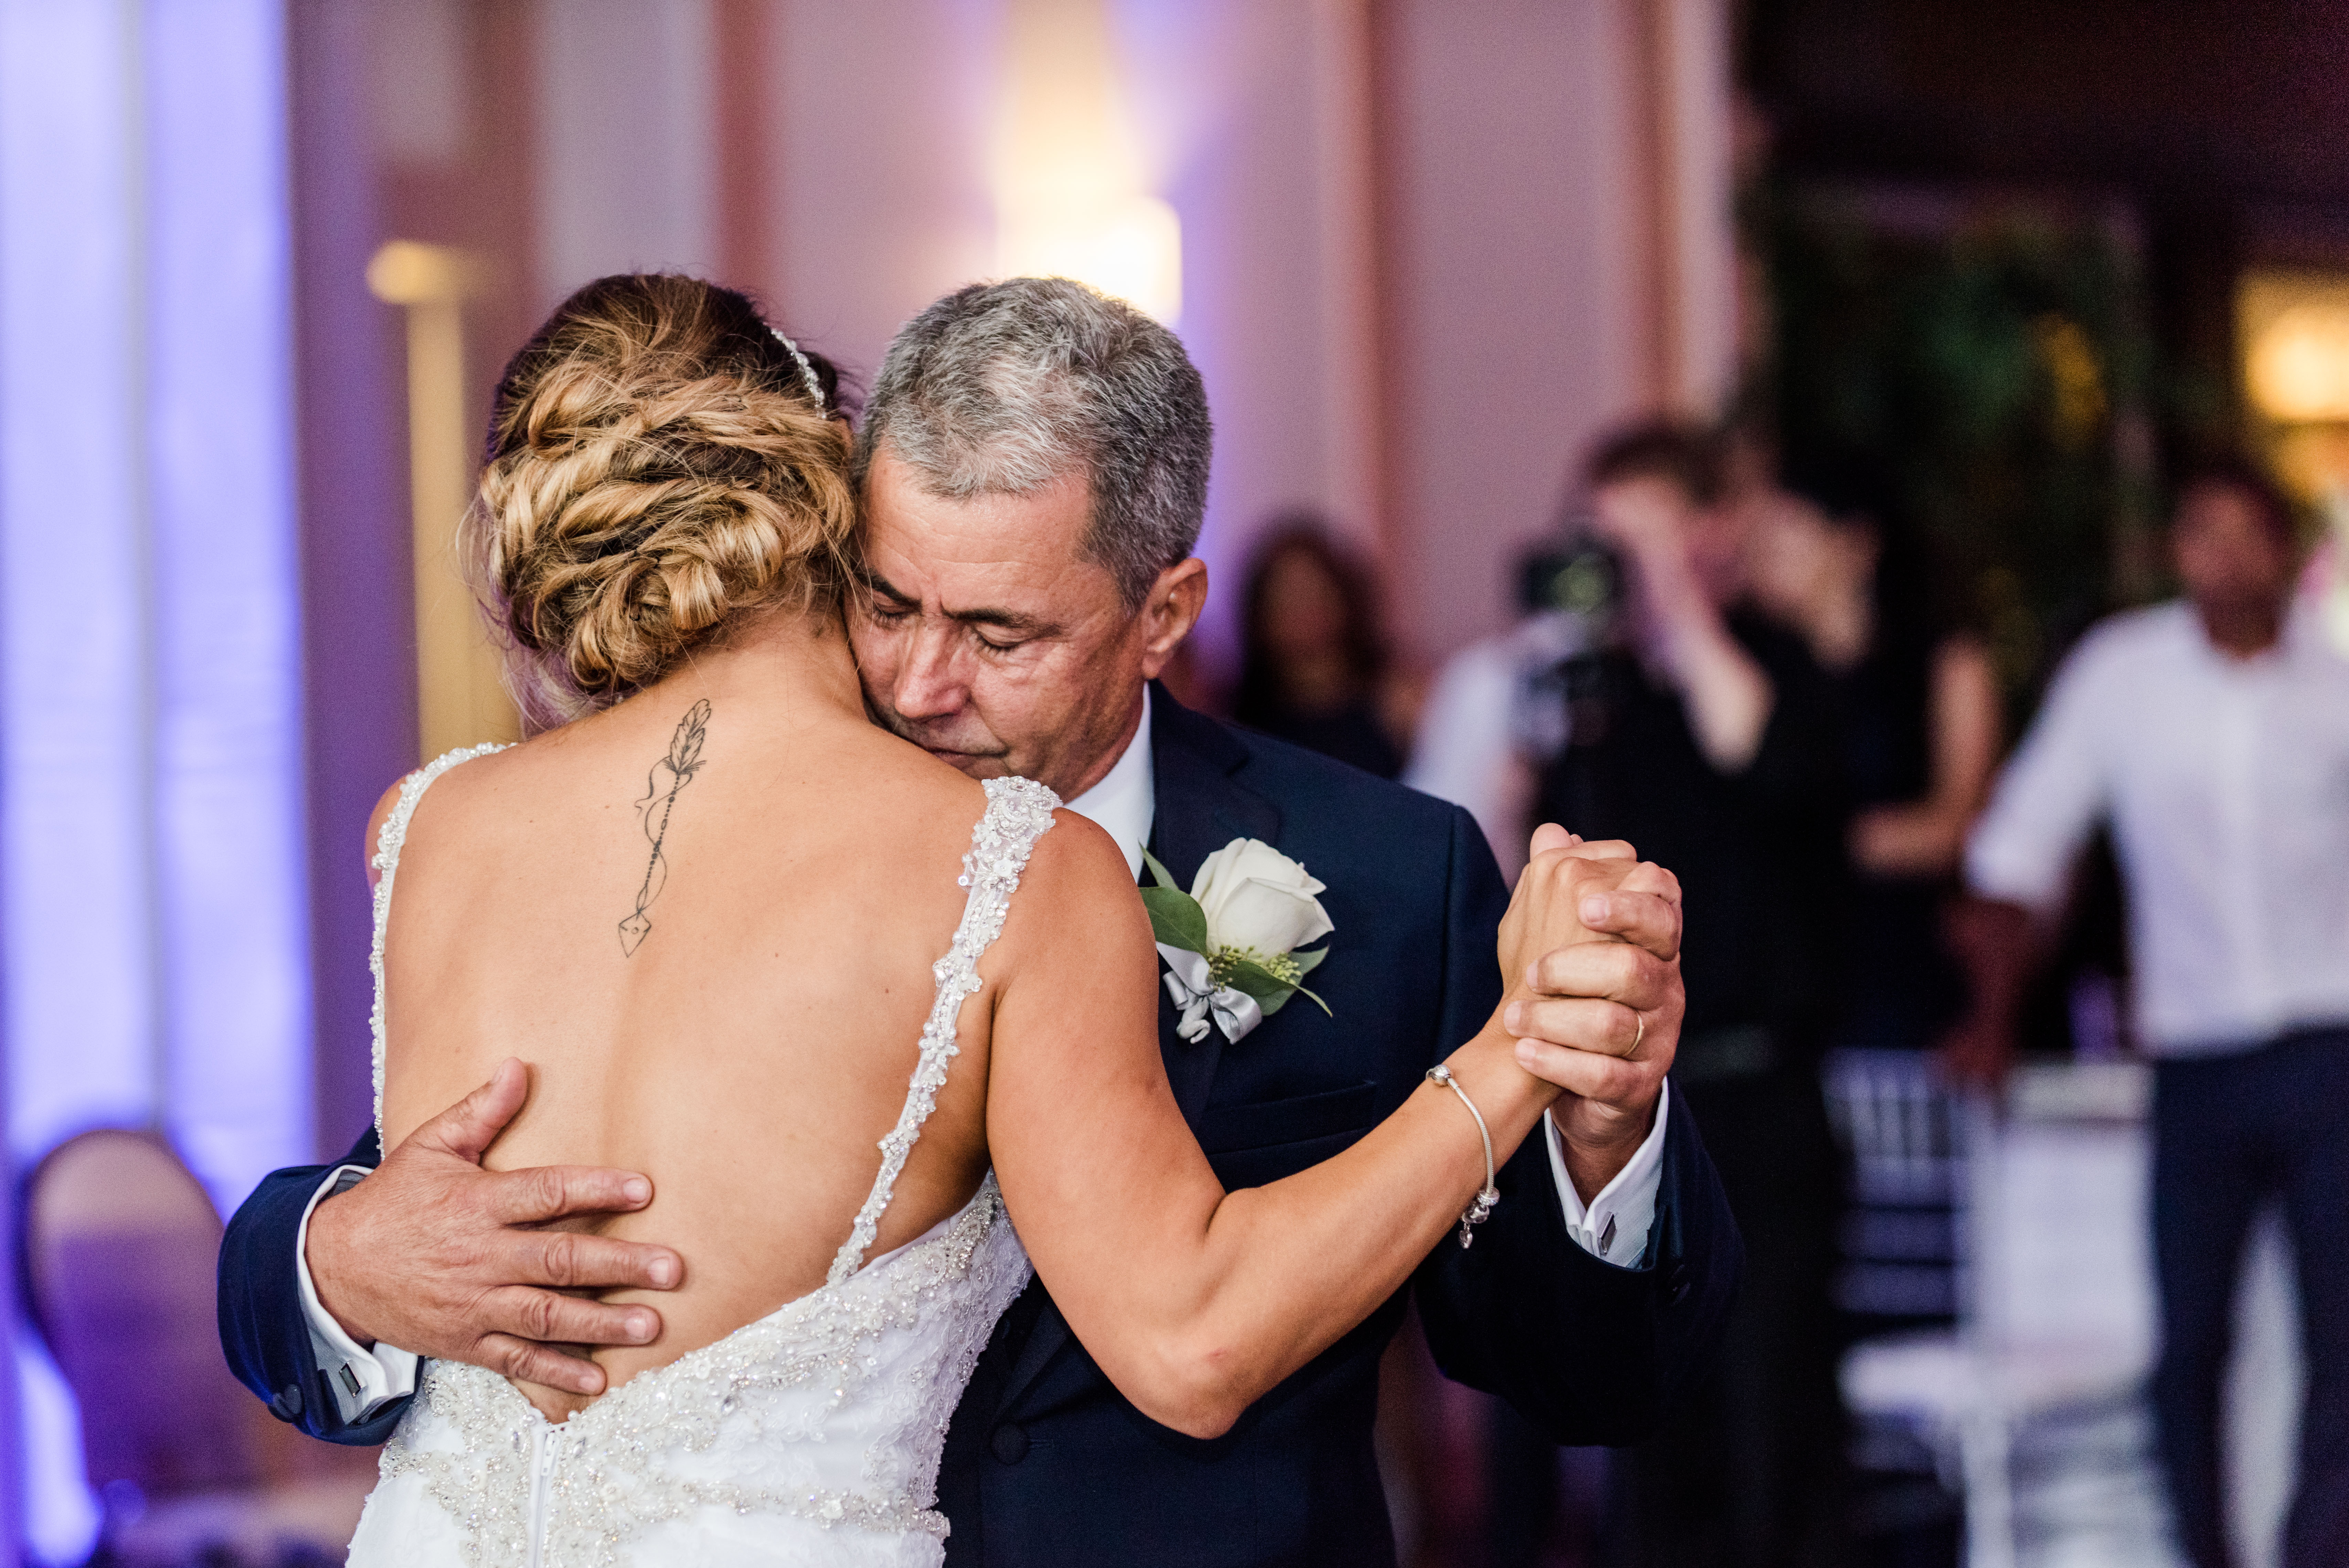 The-Madison-Riverside-South-New-Jersey-Wedding-Photographer-Andrea-Krout-Photography-3